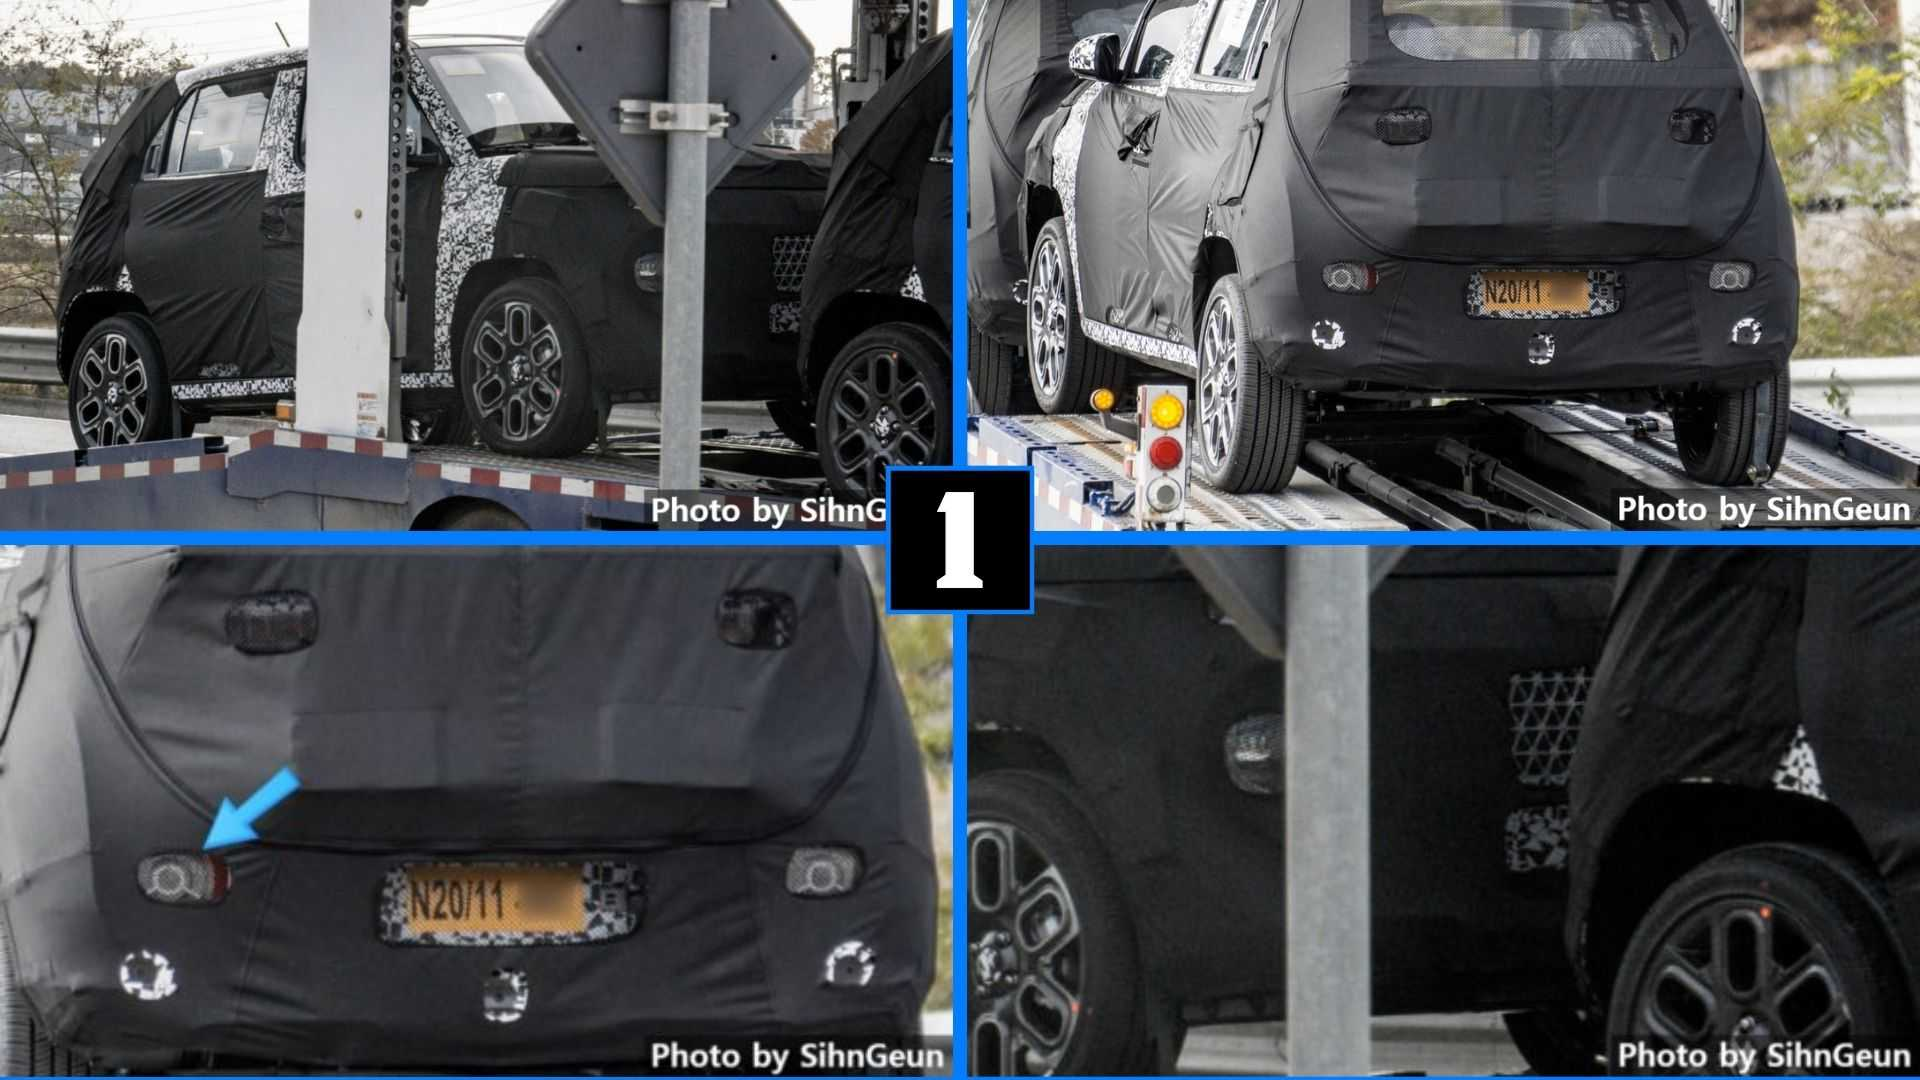 Hyundai Spied Testing Extremely Small Crossover With Skinny Tires